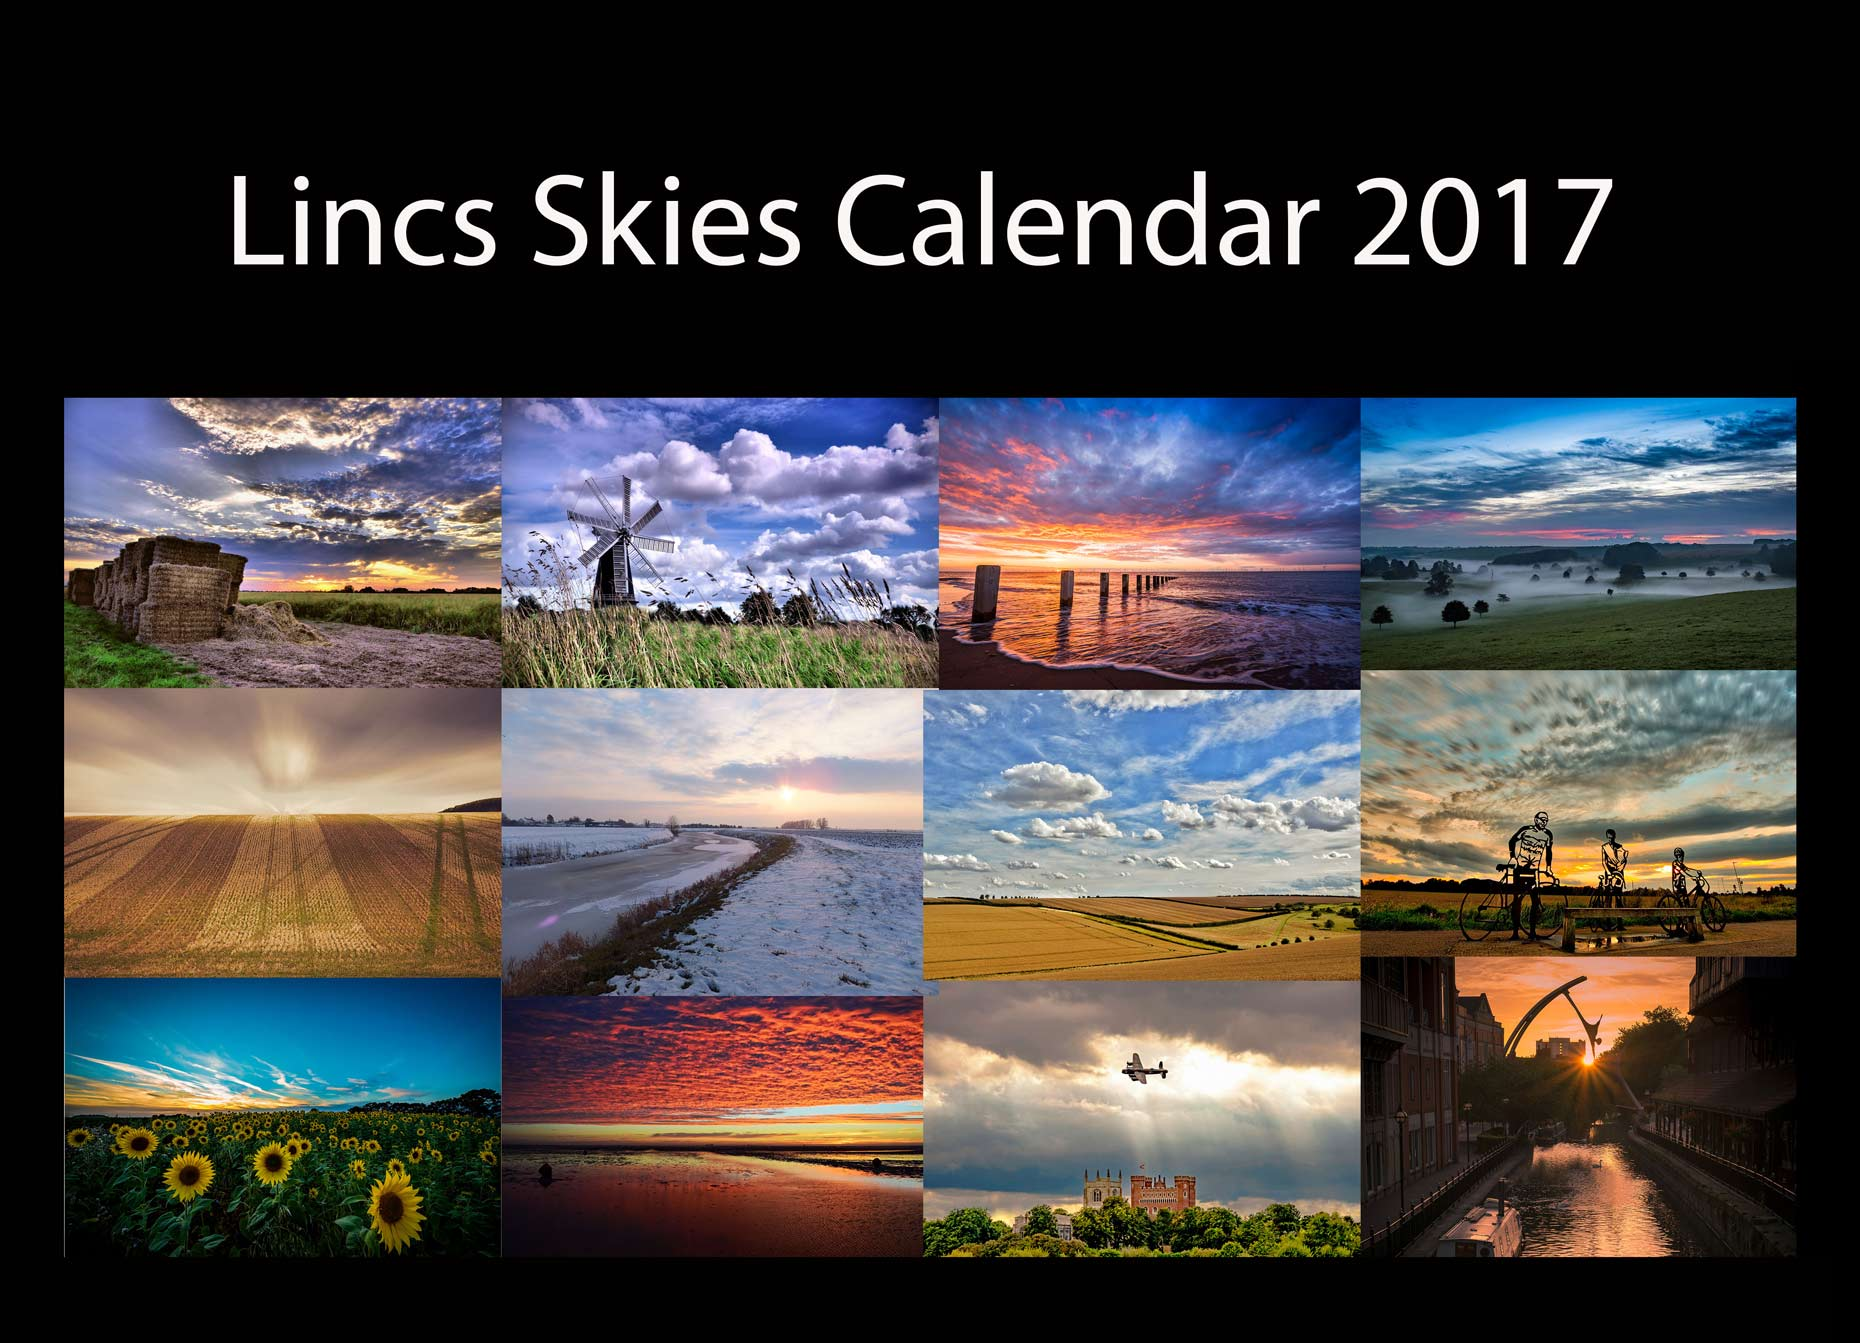 The calendar will be printed soon.